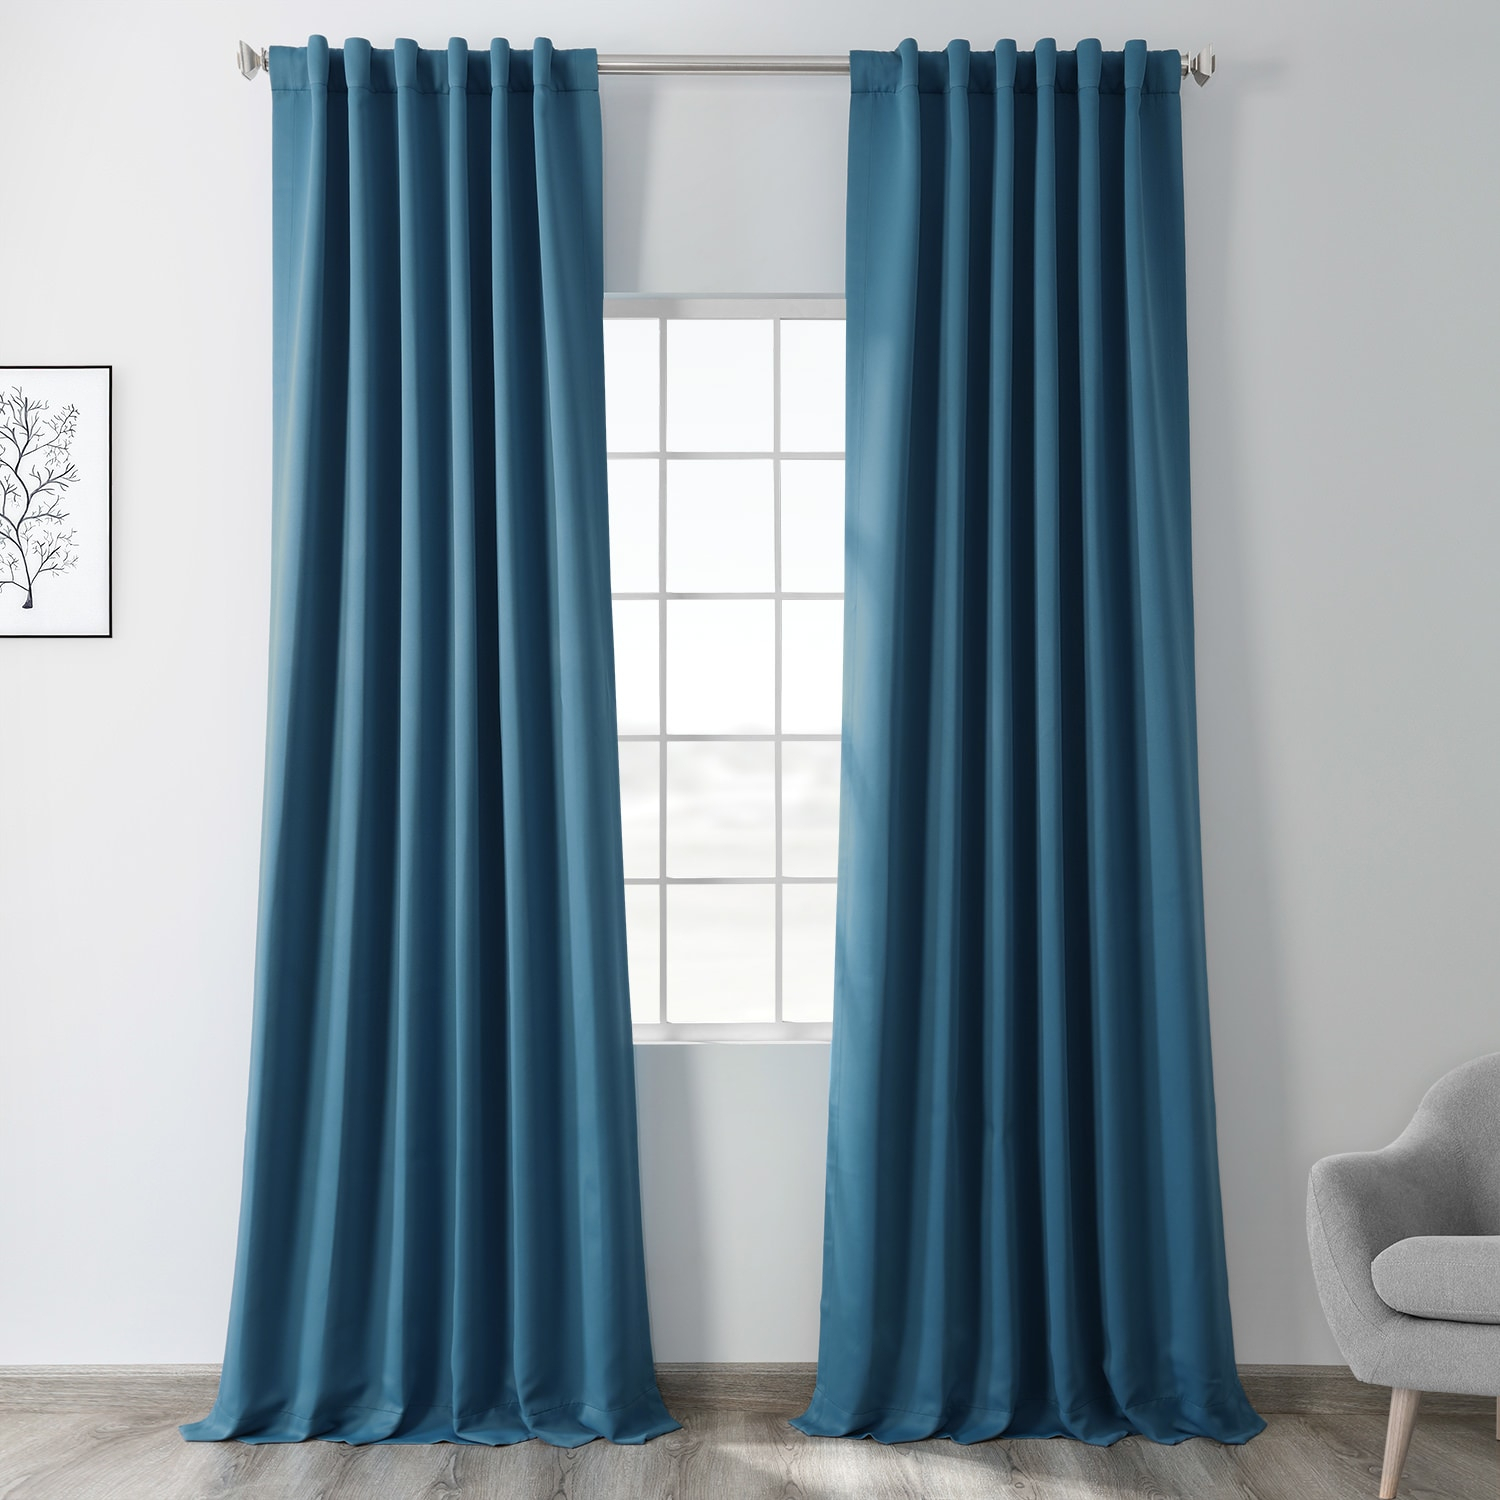 Tsunami Blue Blackout Curtain With Regard To True Blackout Vintage Textured Faux Silk Curtain Panels (View 17 of 30)